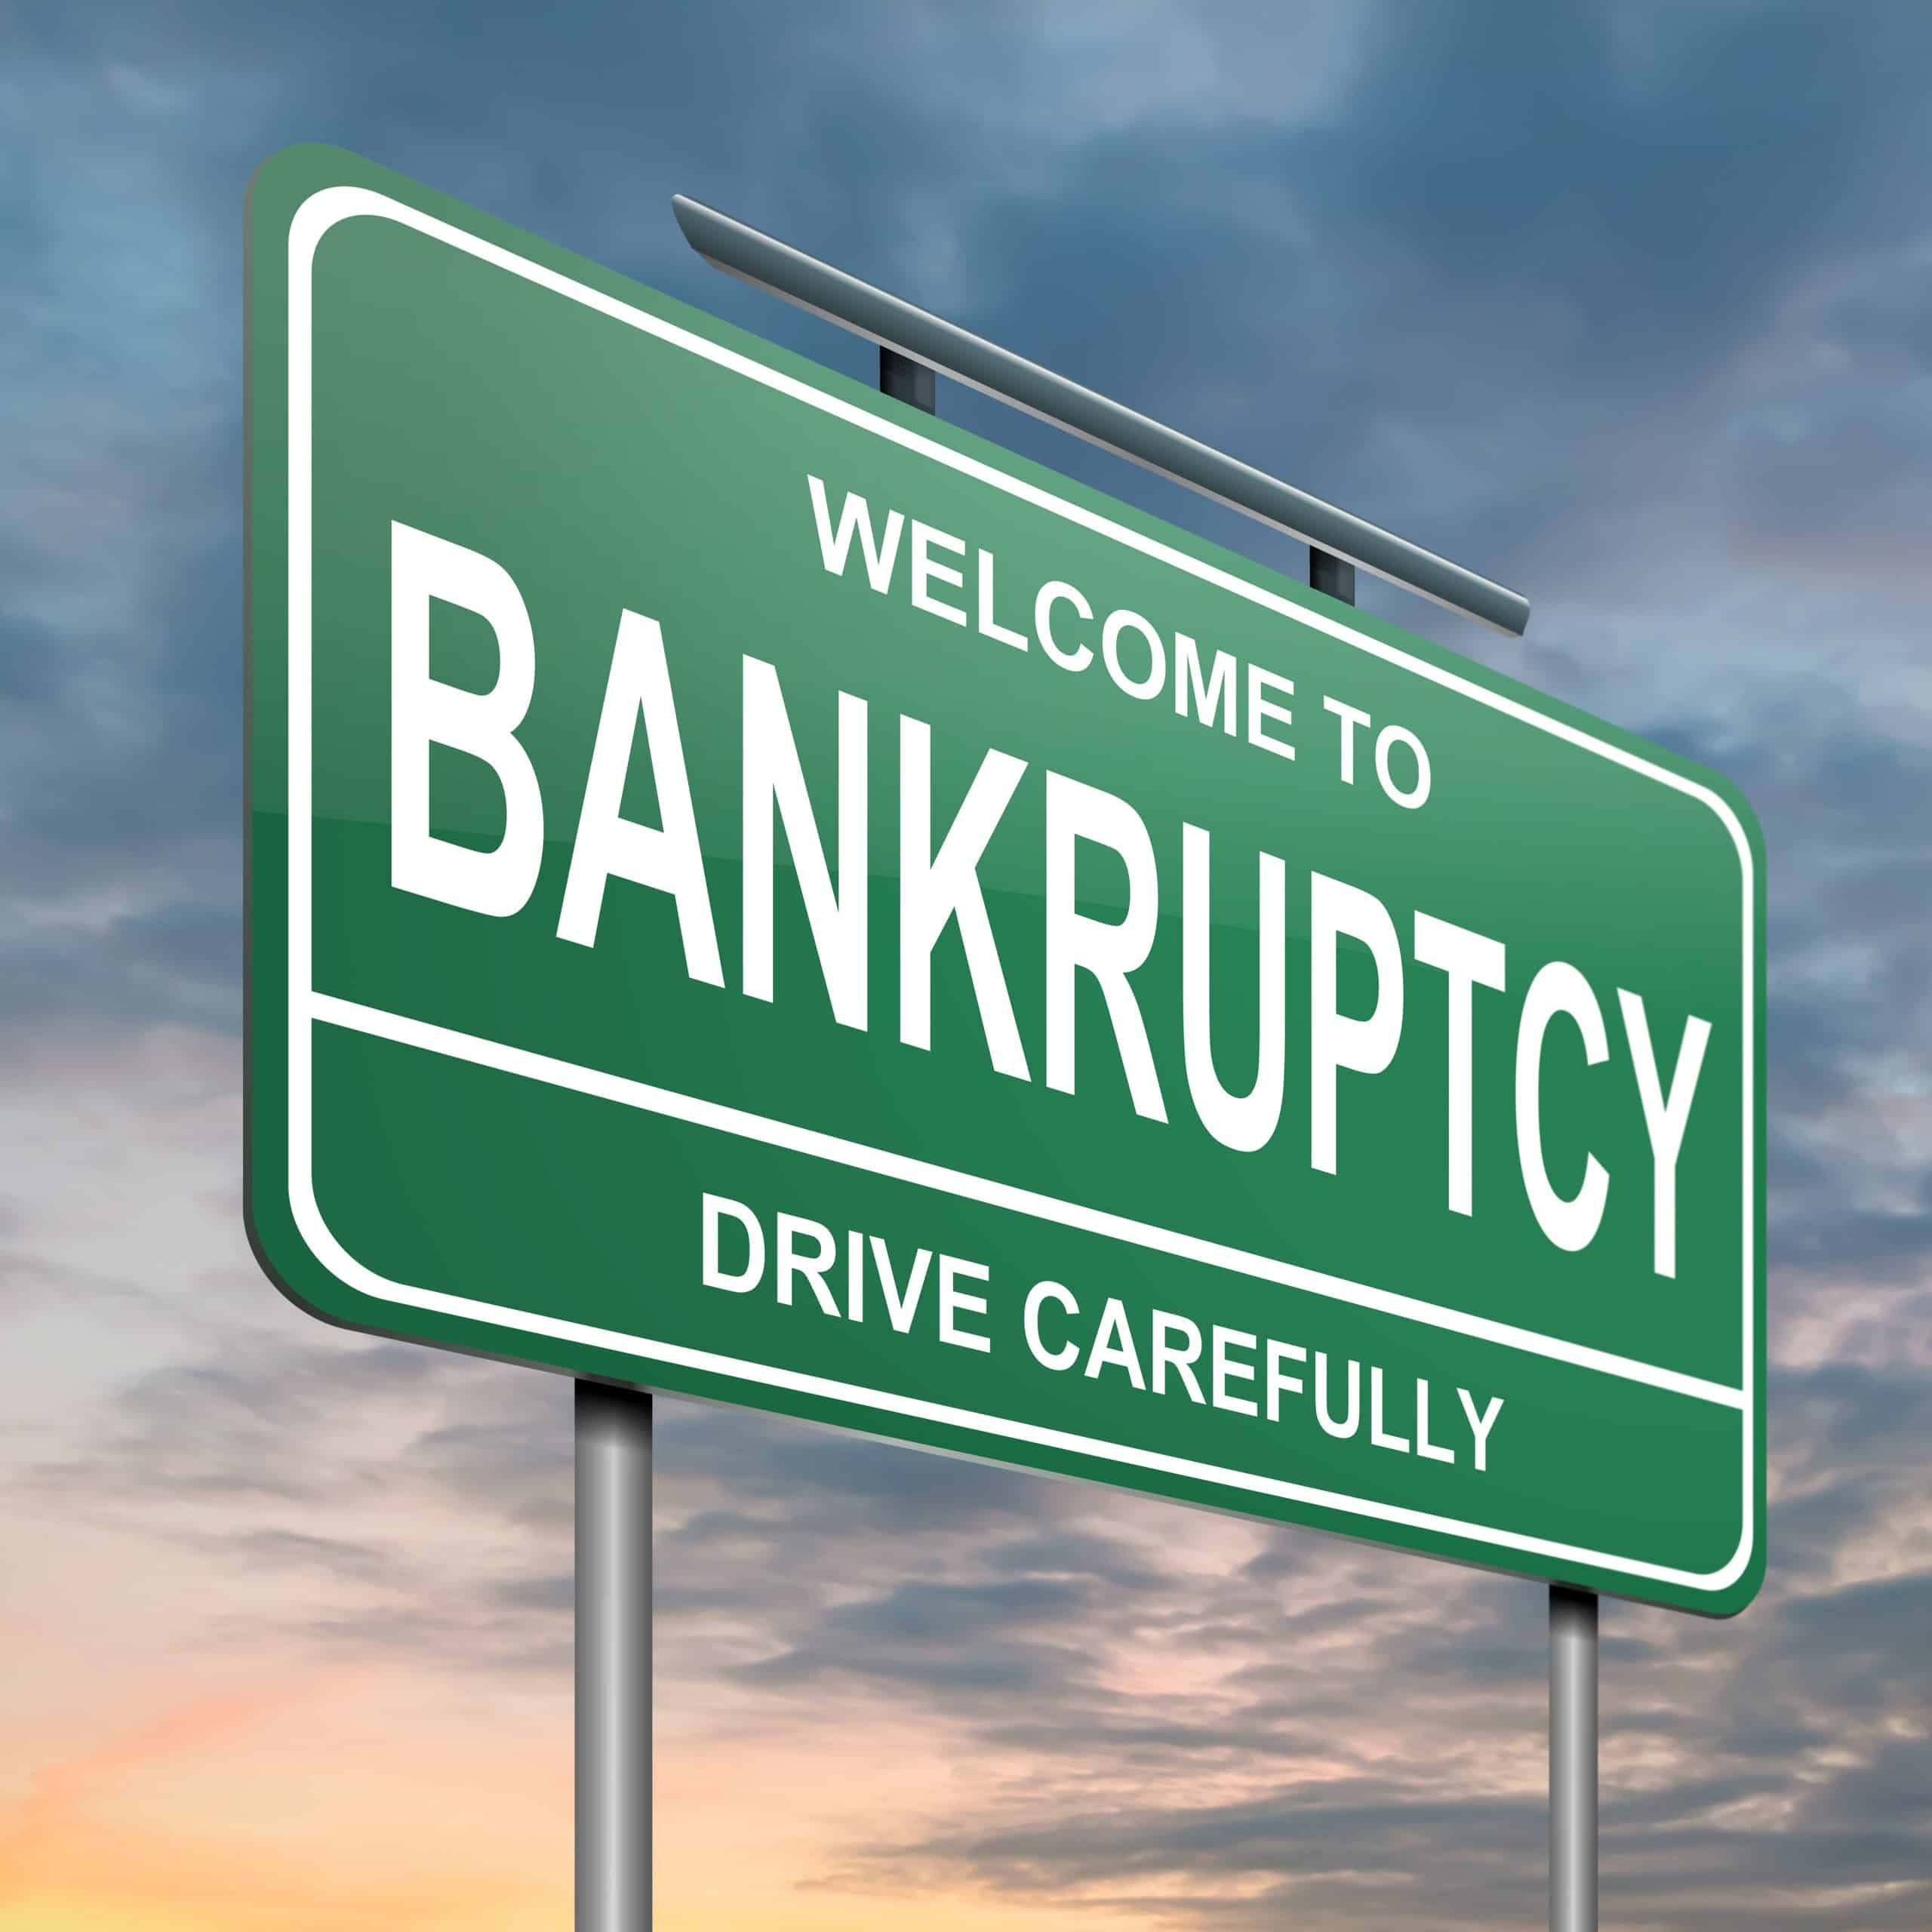 Bankruptcy Concept.